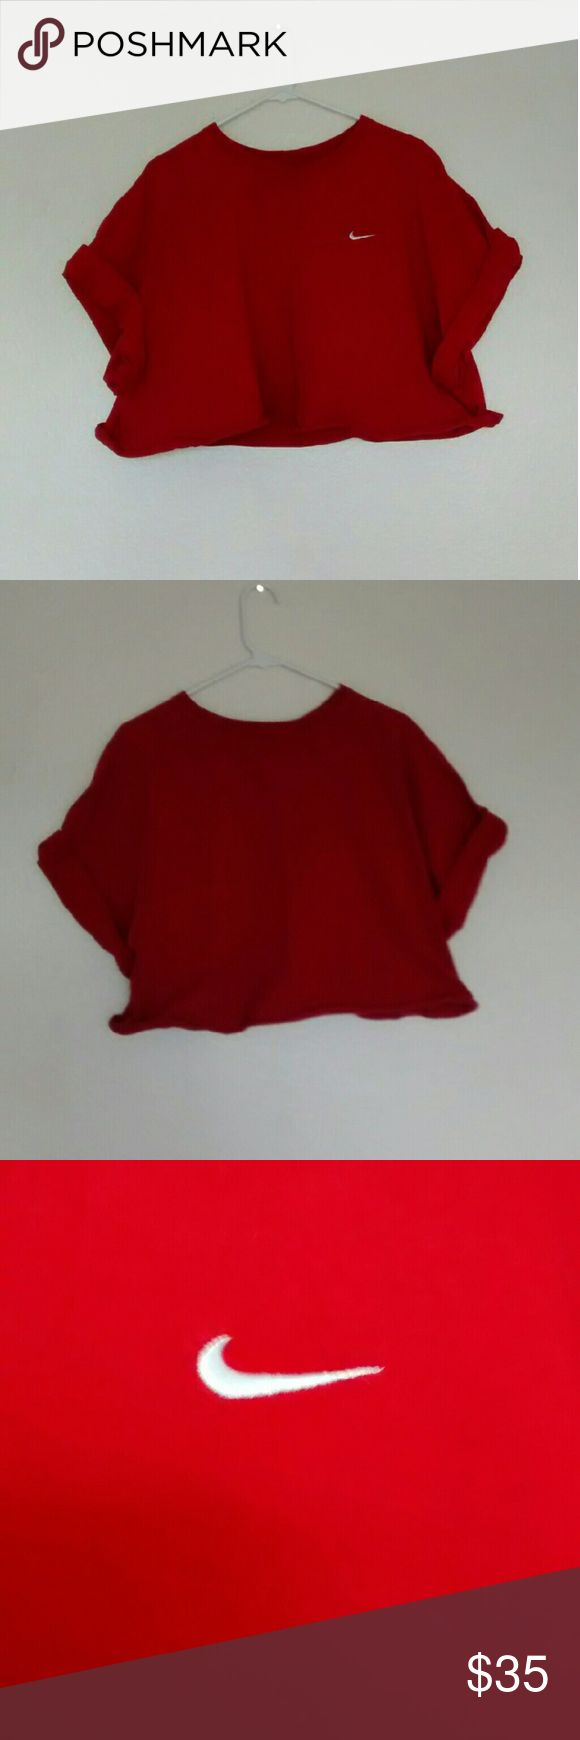 Redd Nike Crop Top This crop top is in great condition and is in a size double XL. Nike Tops Crop Tops